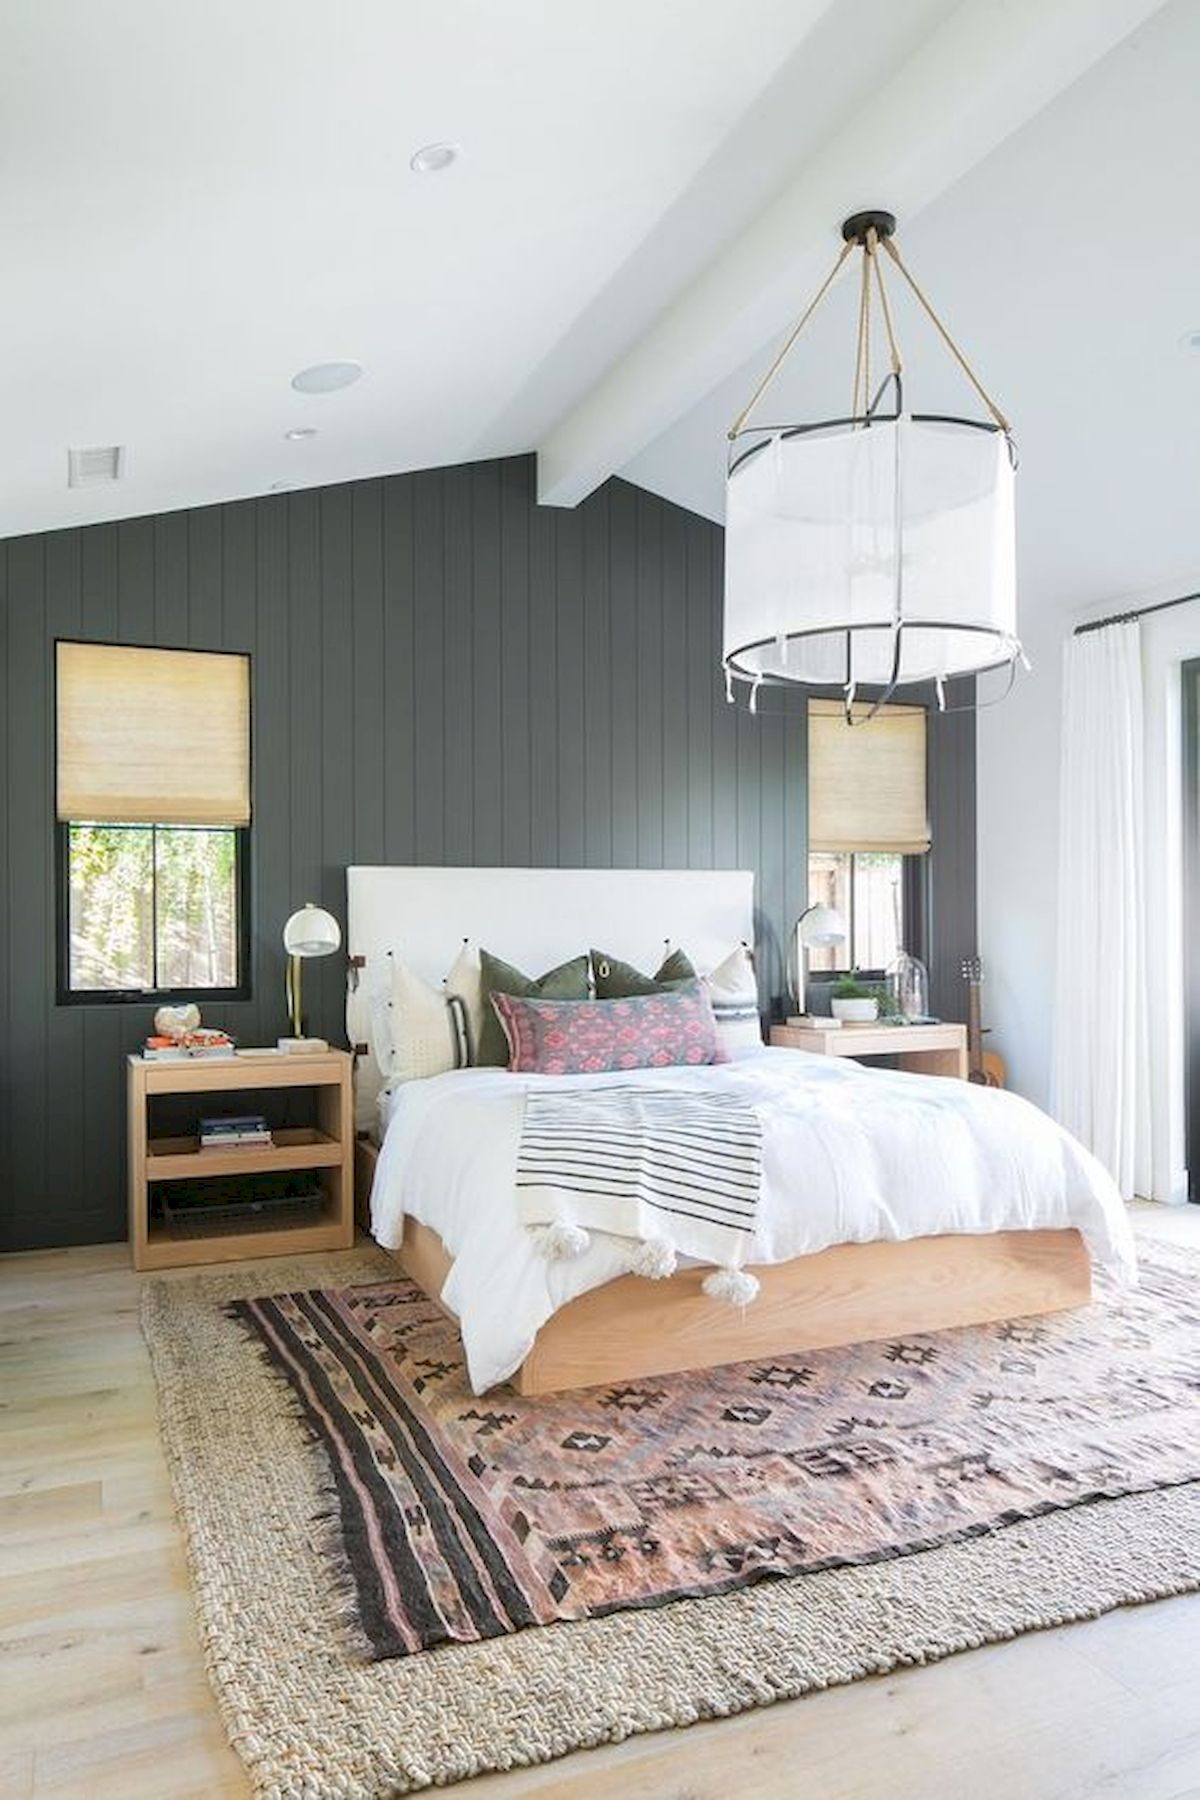 44 Awesome White Master Bedroom Design and Decor Ideas For Any Home Design (14)